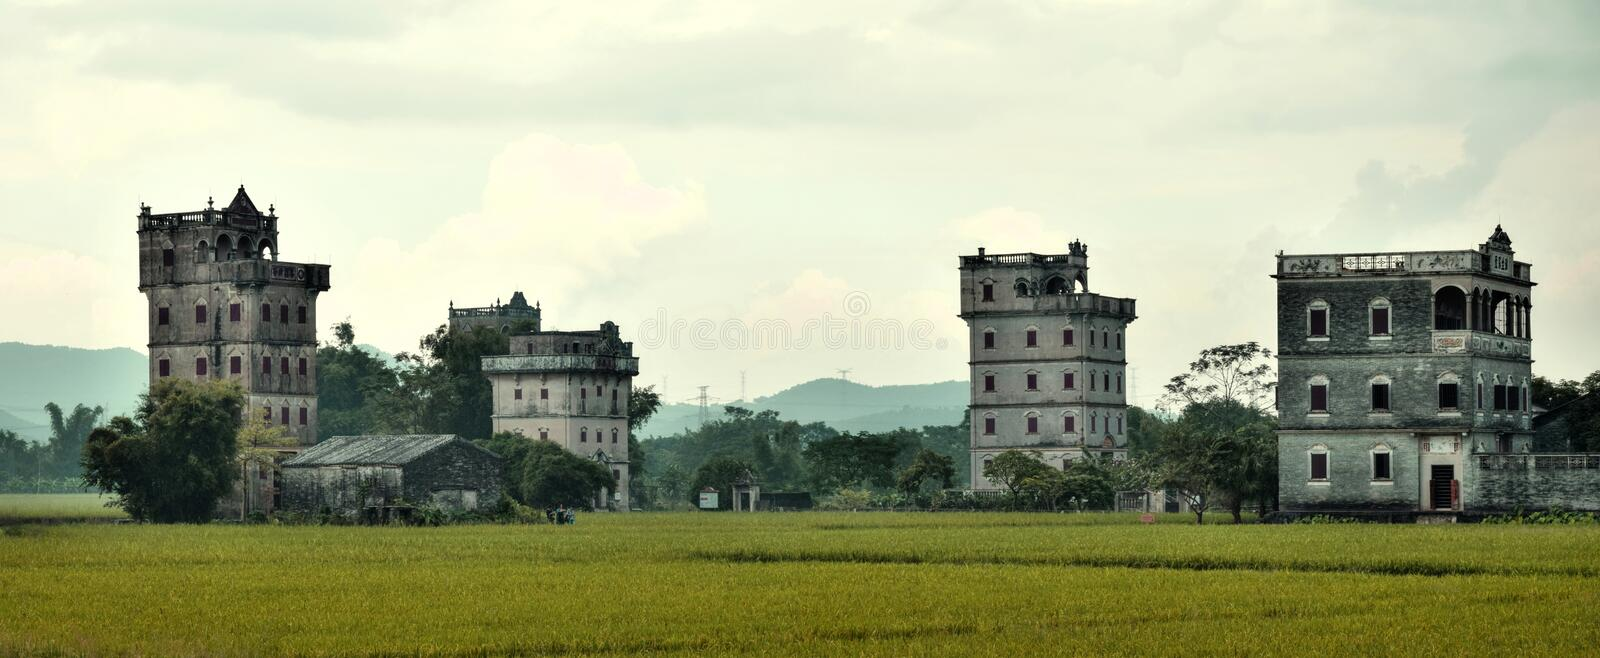 The Kaiping Diaolou watchtowers in Guangdong province in China. Are fortified multi-storey towers served mainly as protection against forays by bandits, a few royalty free stock photos